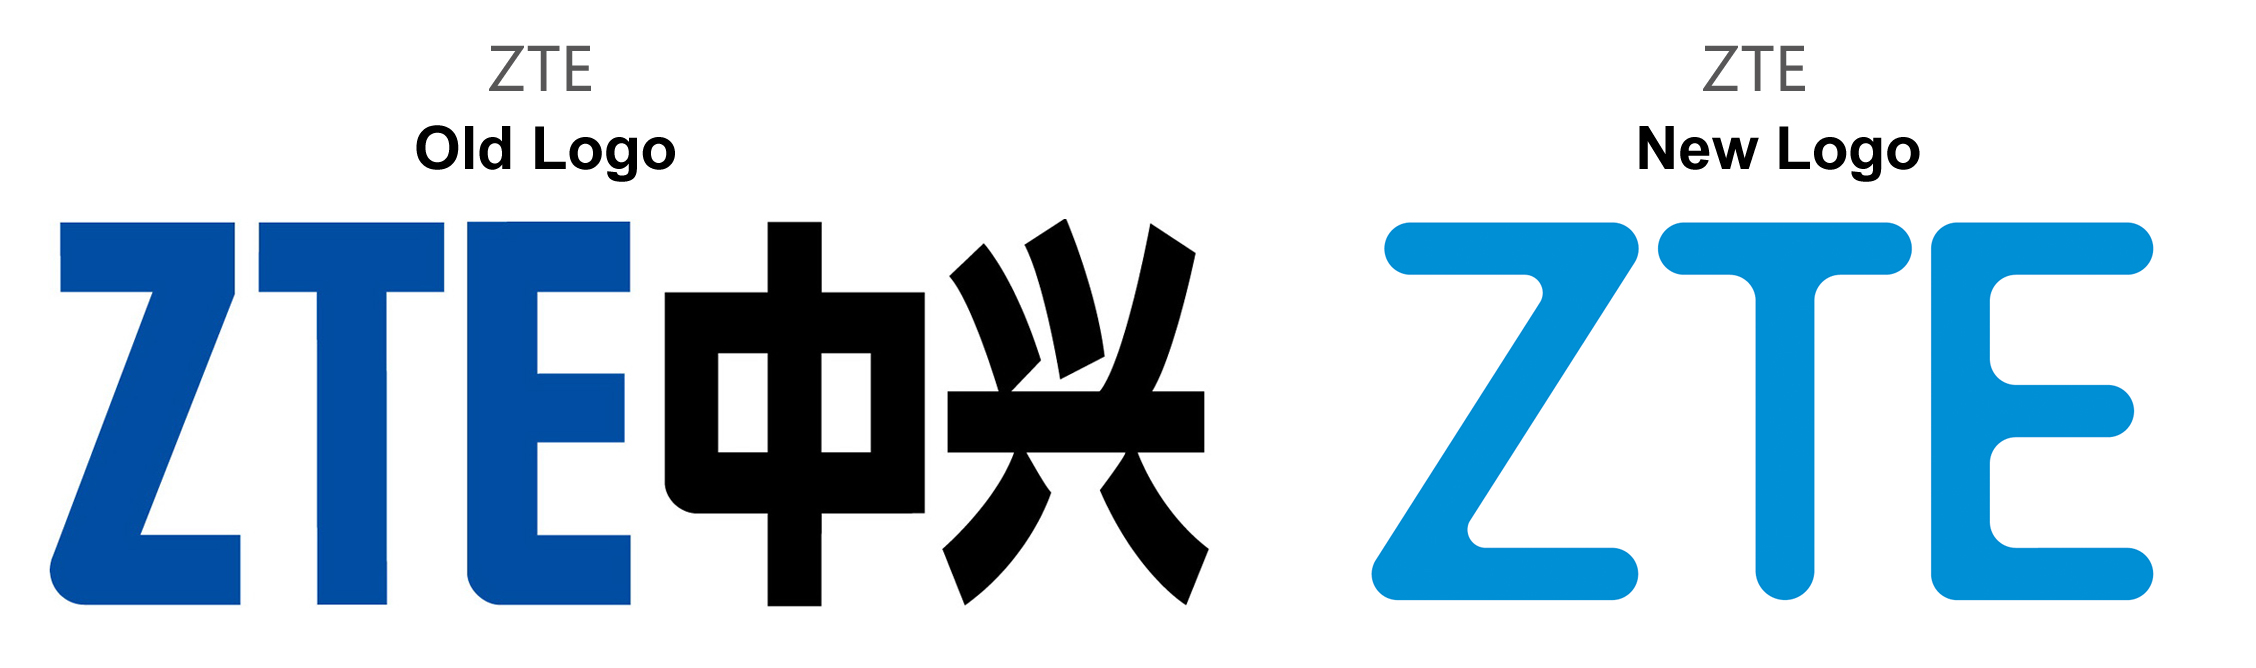 ZTE Old Logo vs New Logo